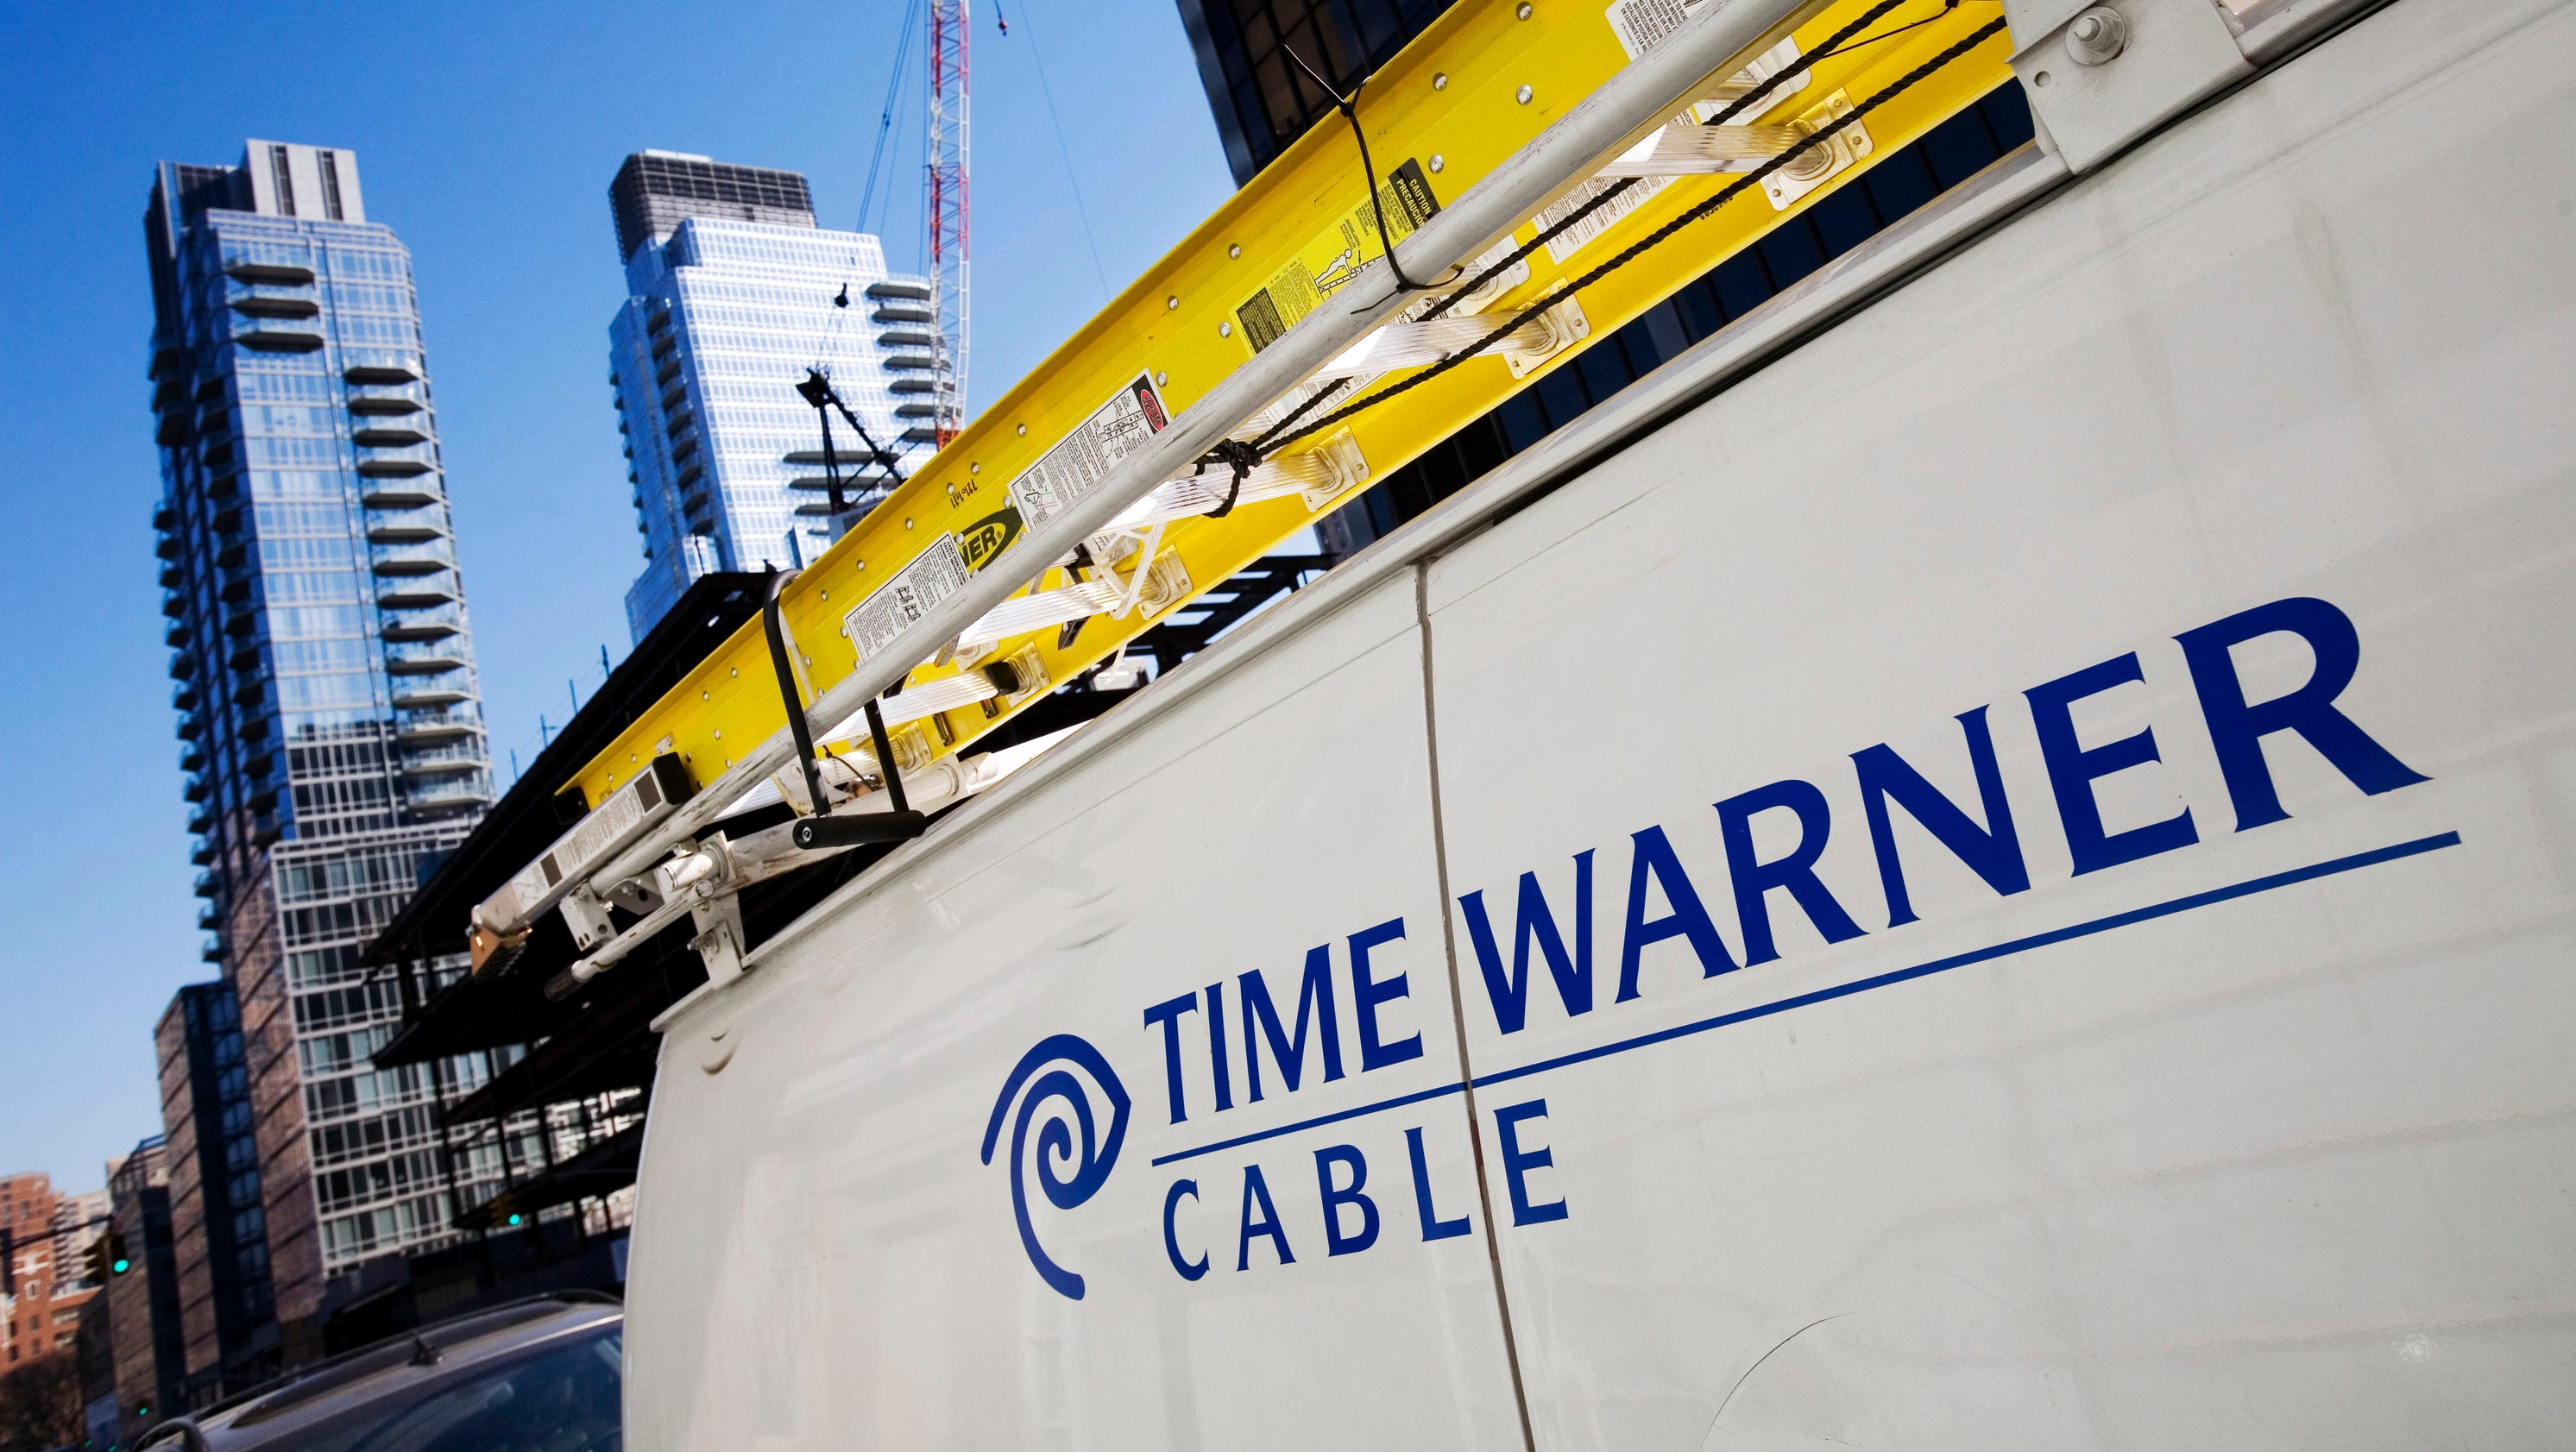 Time Warner Cable Online After Widespread Net Outage